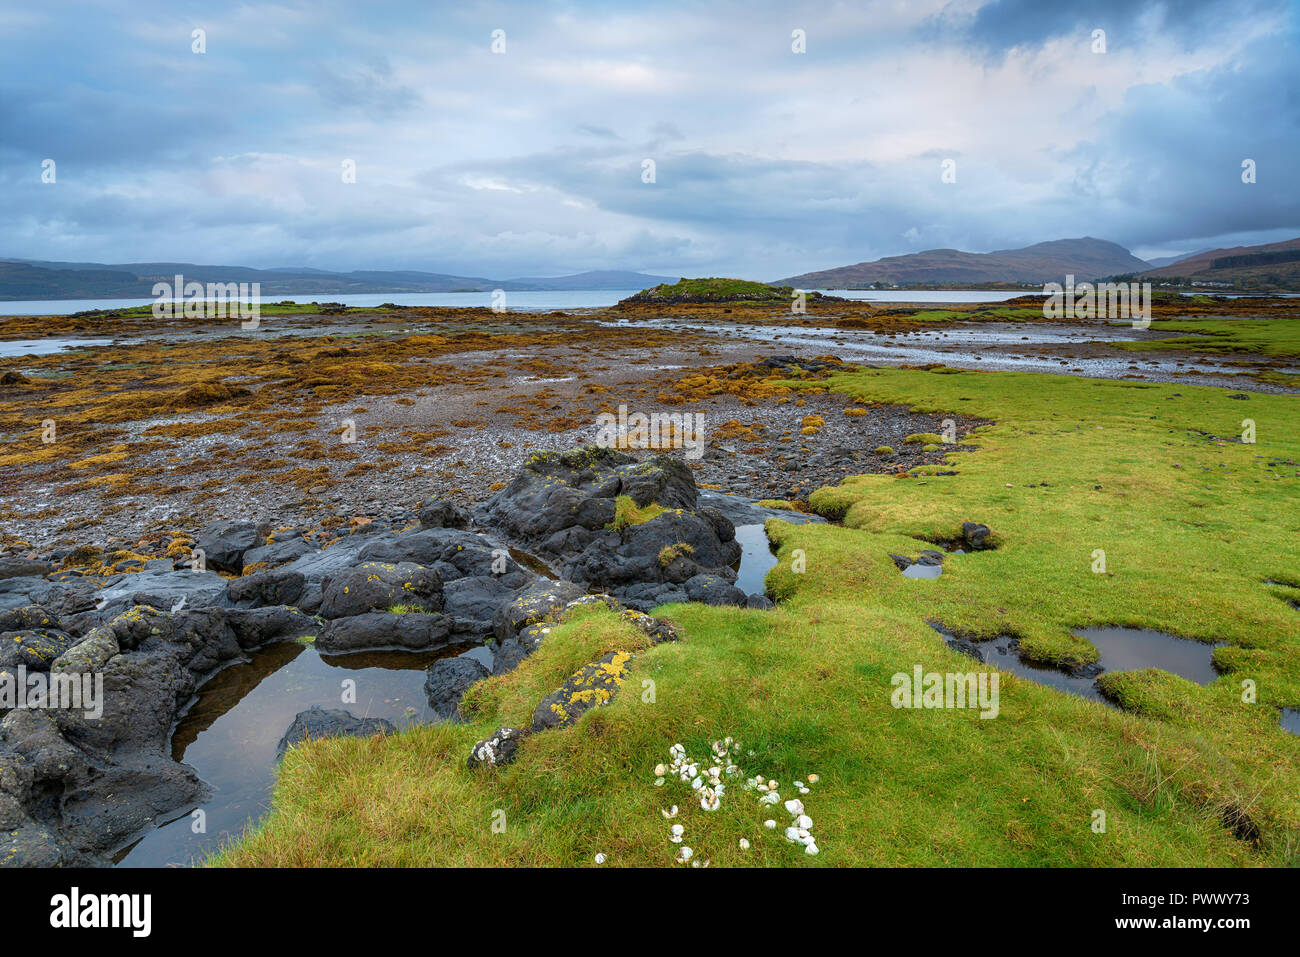 On the shores of the Sound of Mull near Salen on the Isle of Mull in Scotland - Stock Image